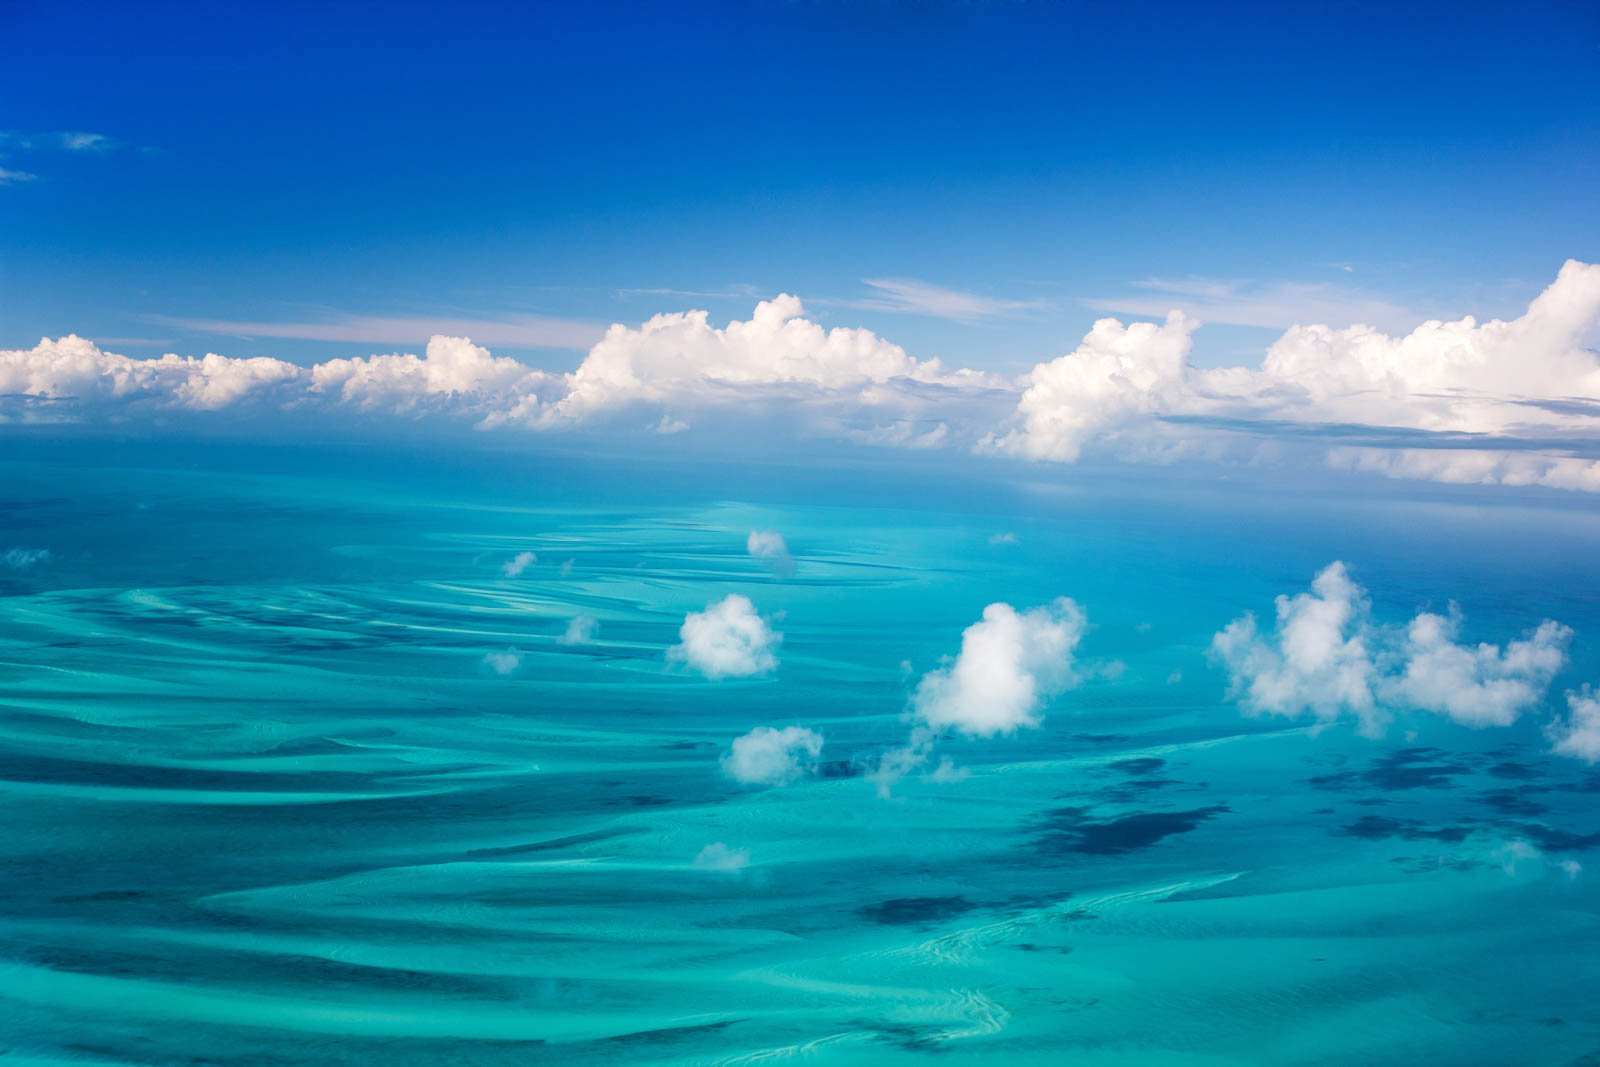 Beautiful view of Bahamas islands from above on a Bahamas air charter. The boat from Miami to Bahamas cannot offer these views on your Bahamas day trip.